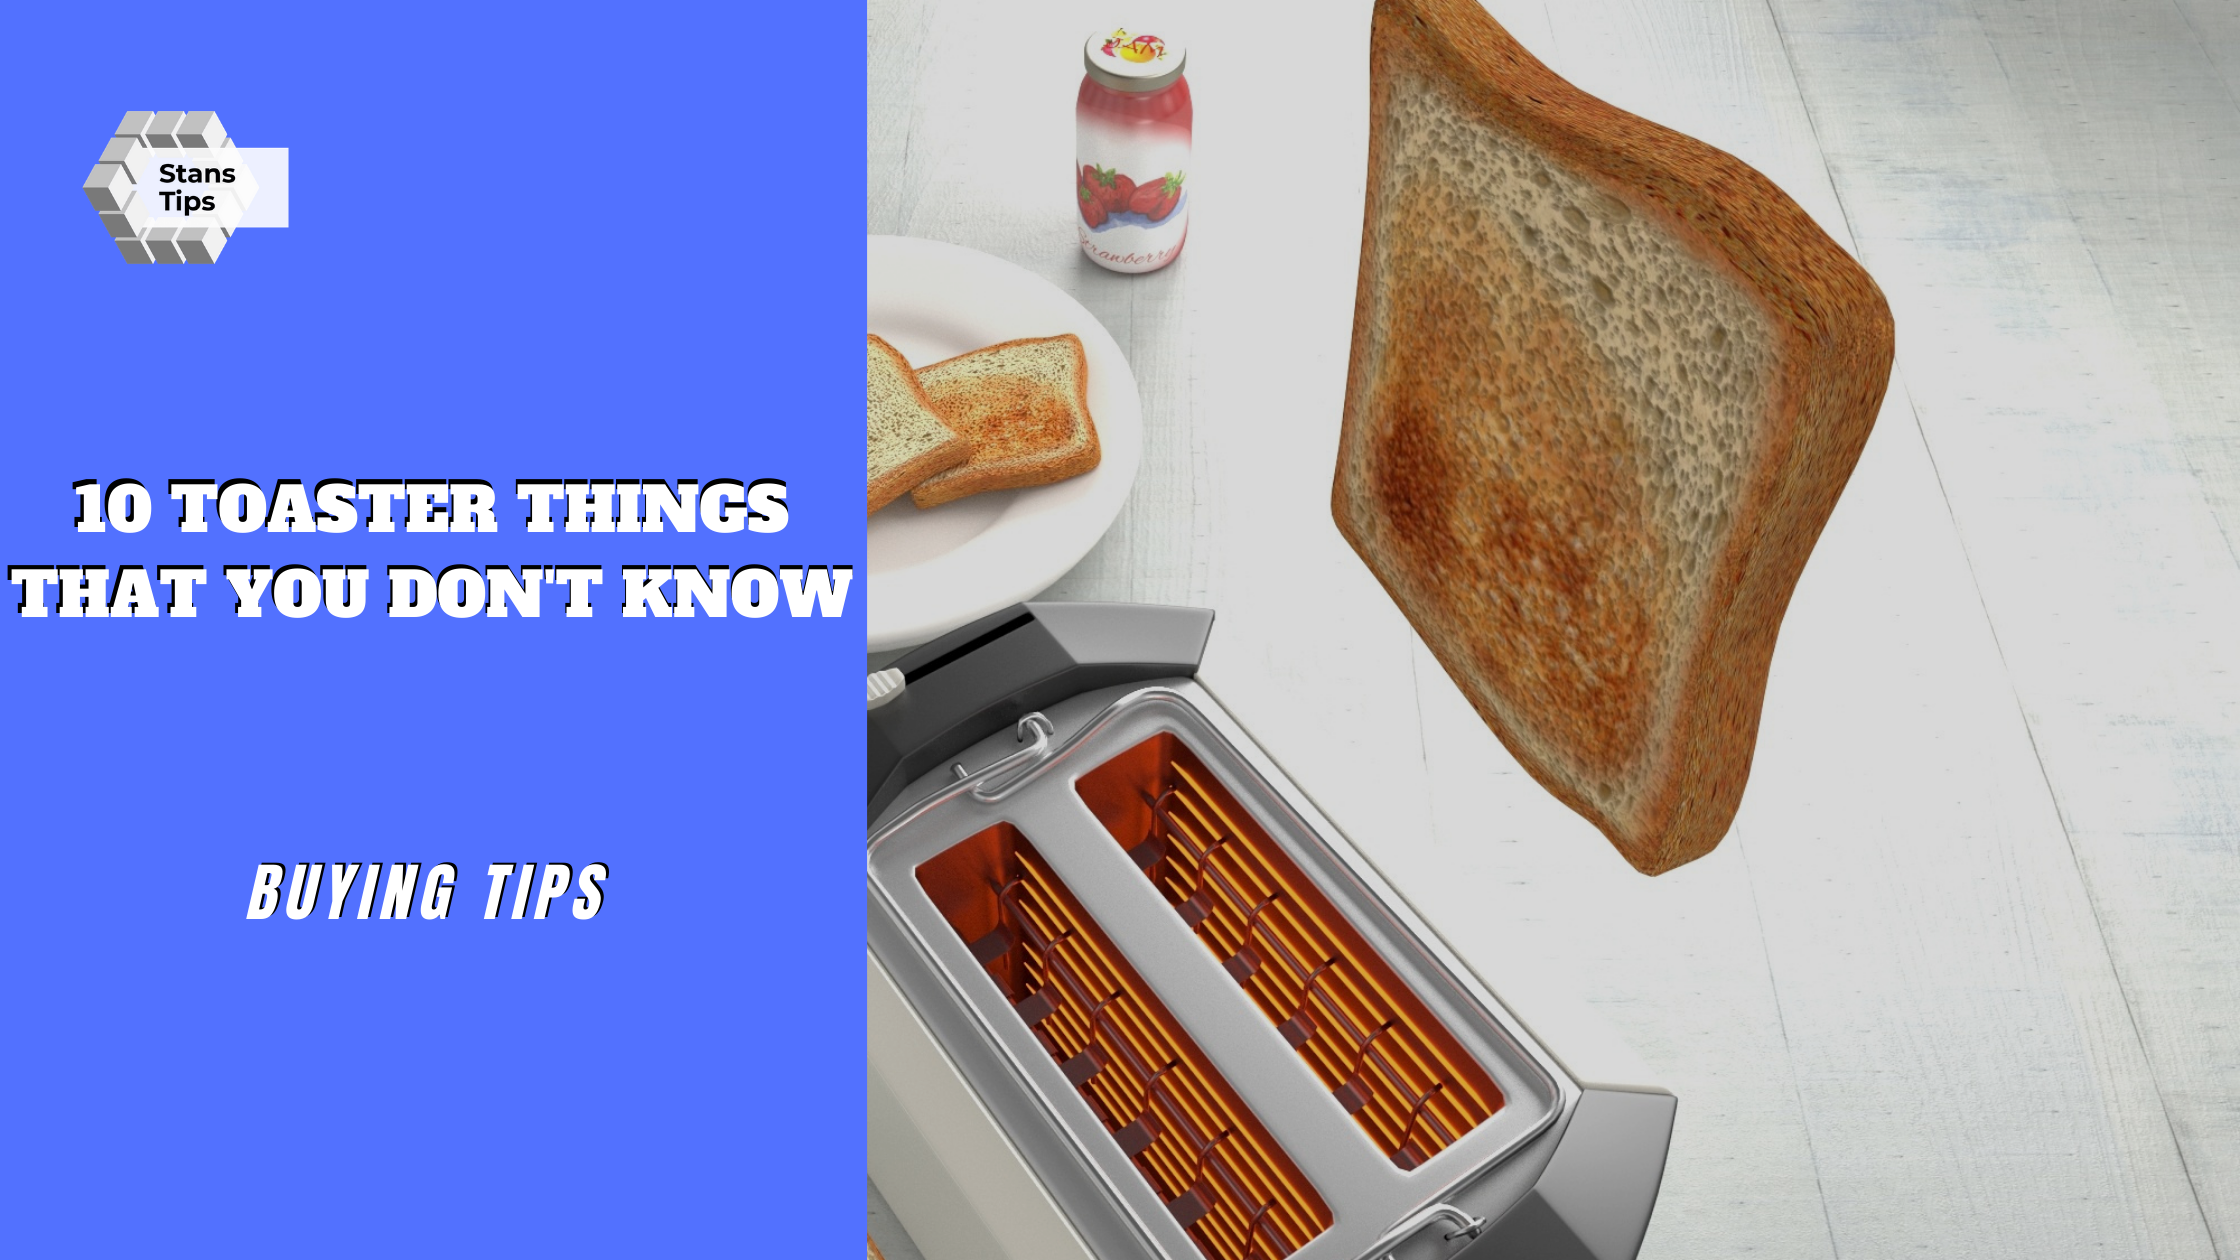 Toaster buying tips